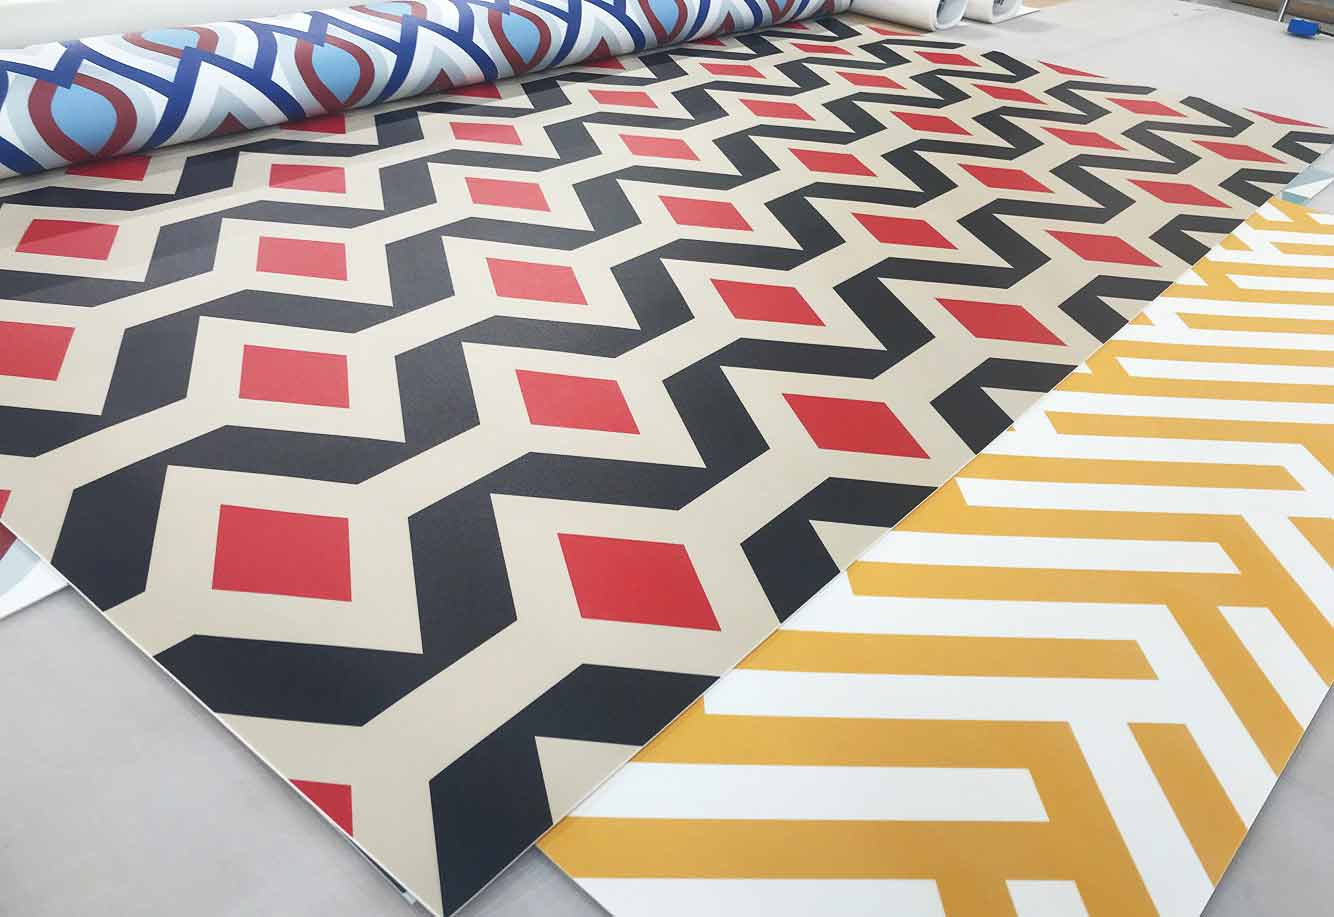 Image showing the rolls of pattern vinyl flooring produced by For the Floor and More